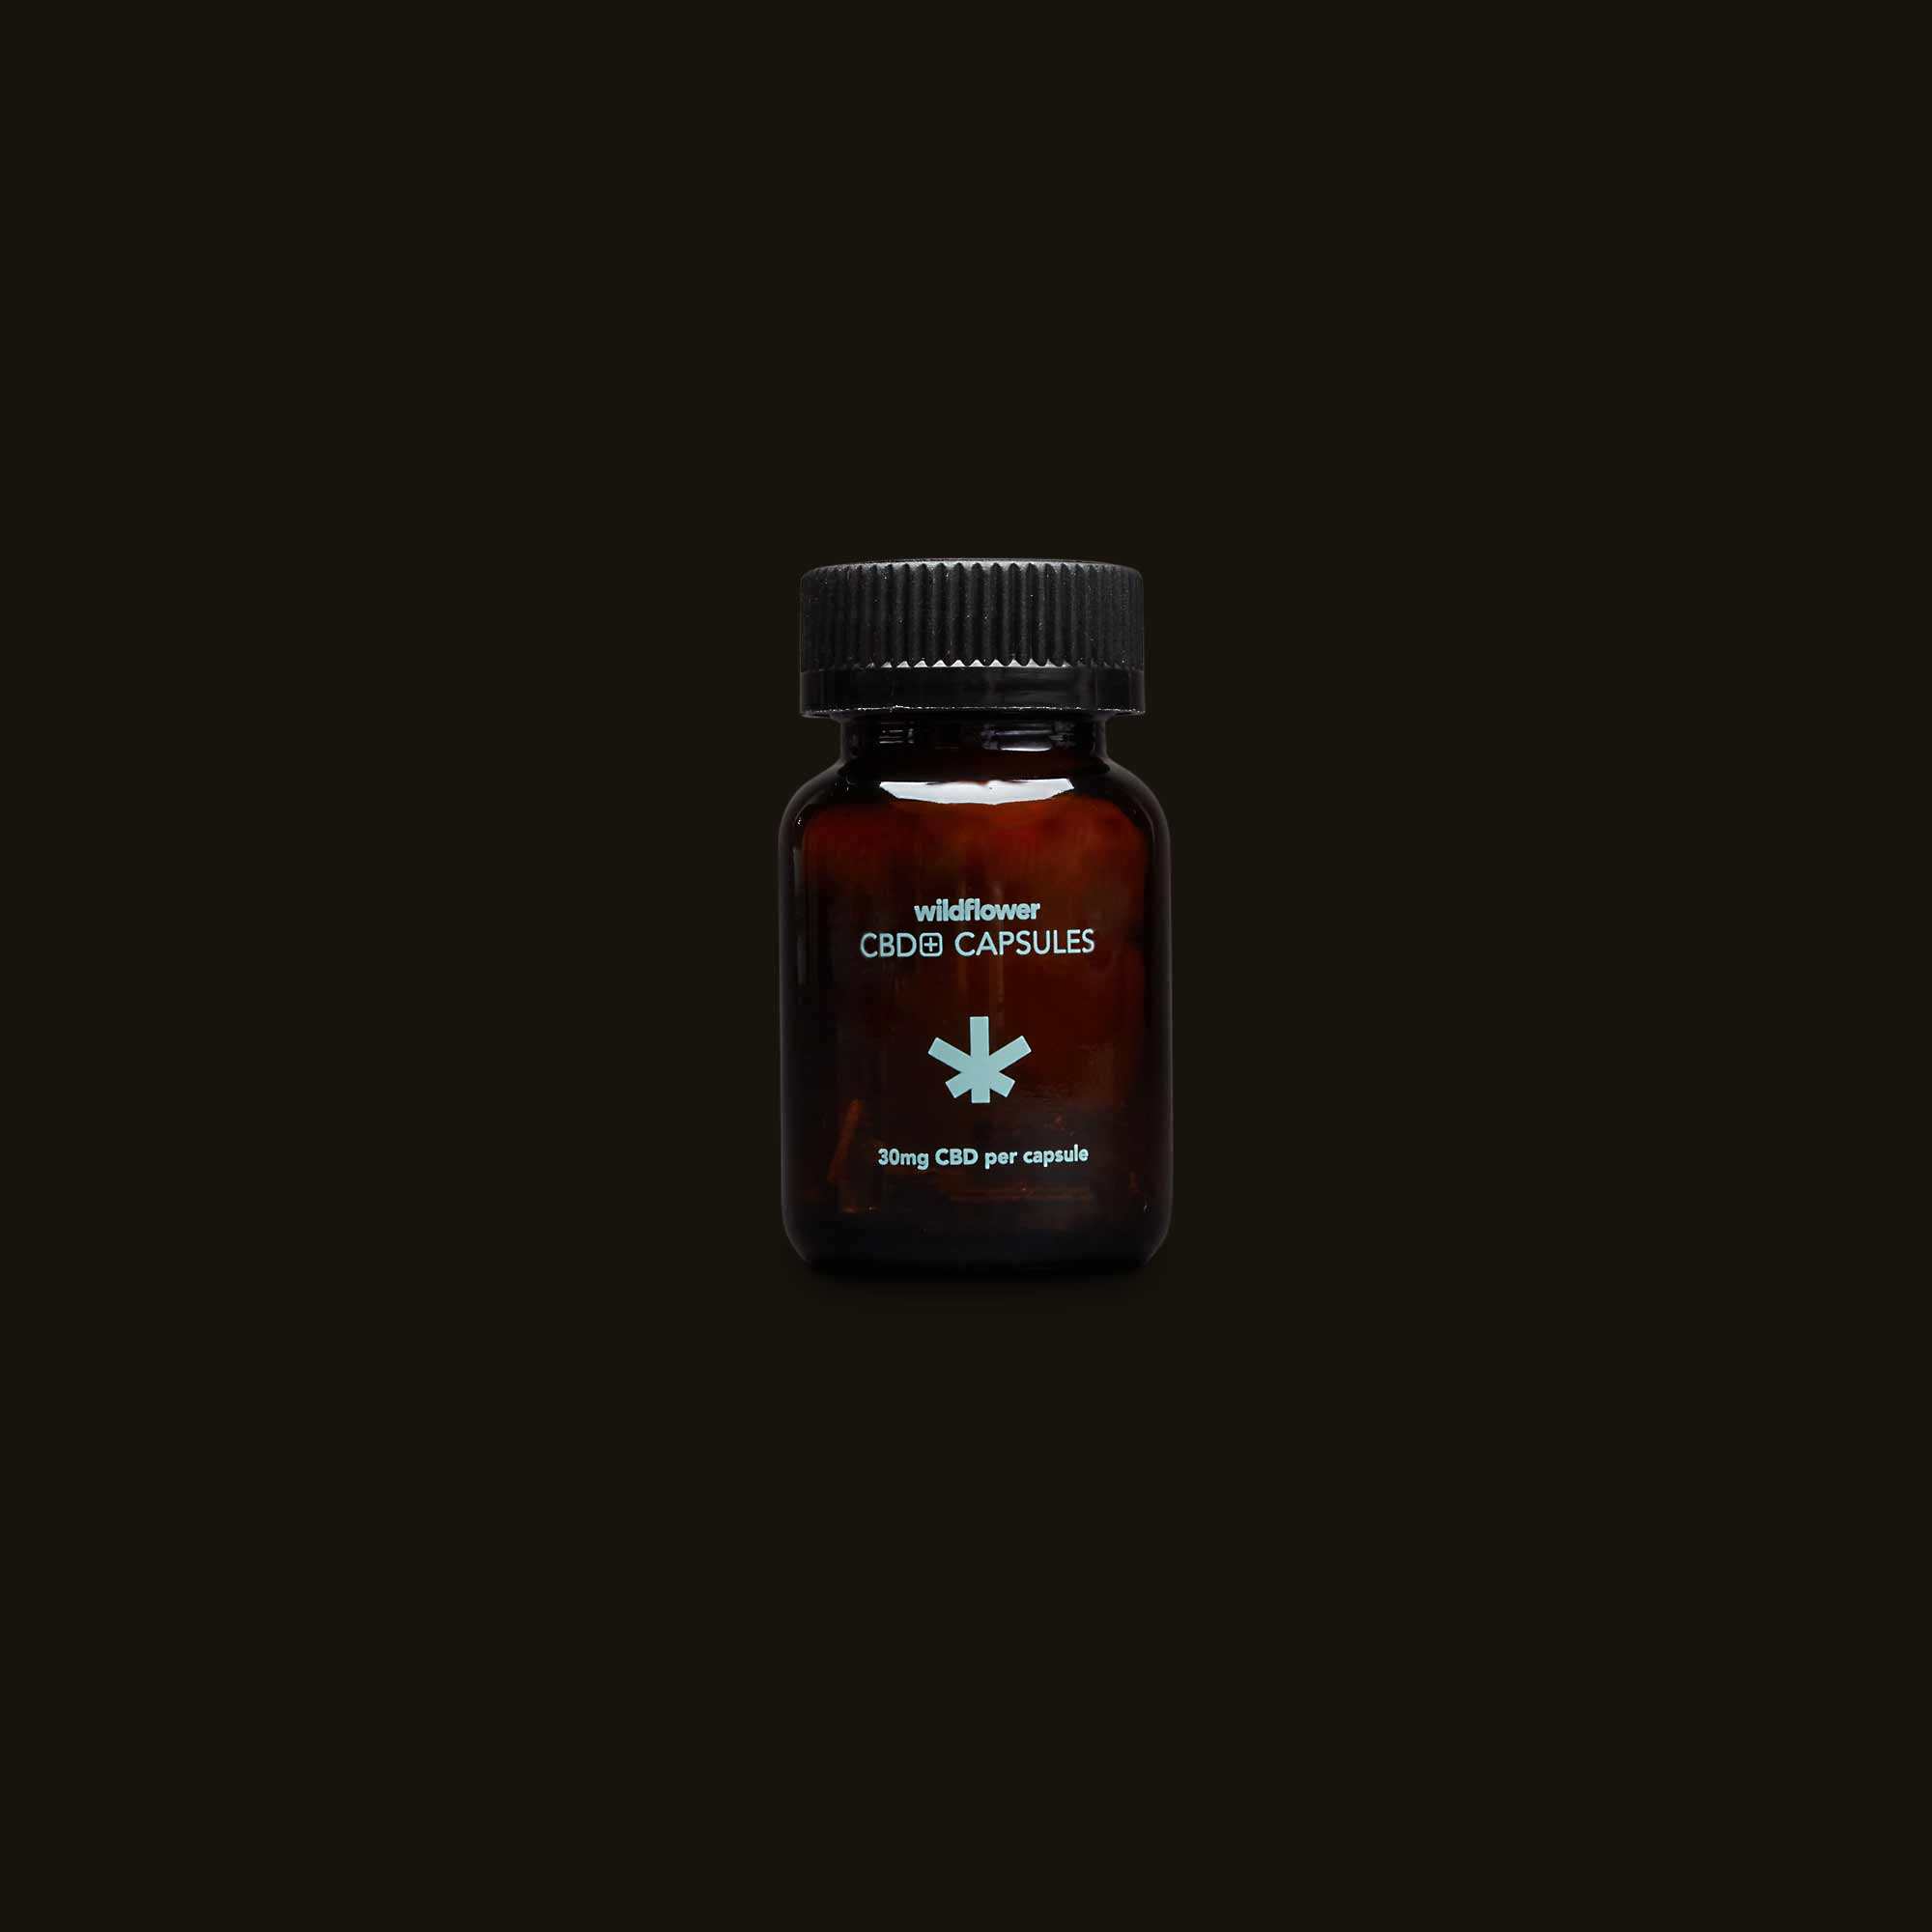 Wildflower CBD+ Capsules